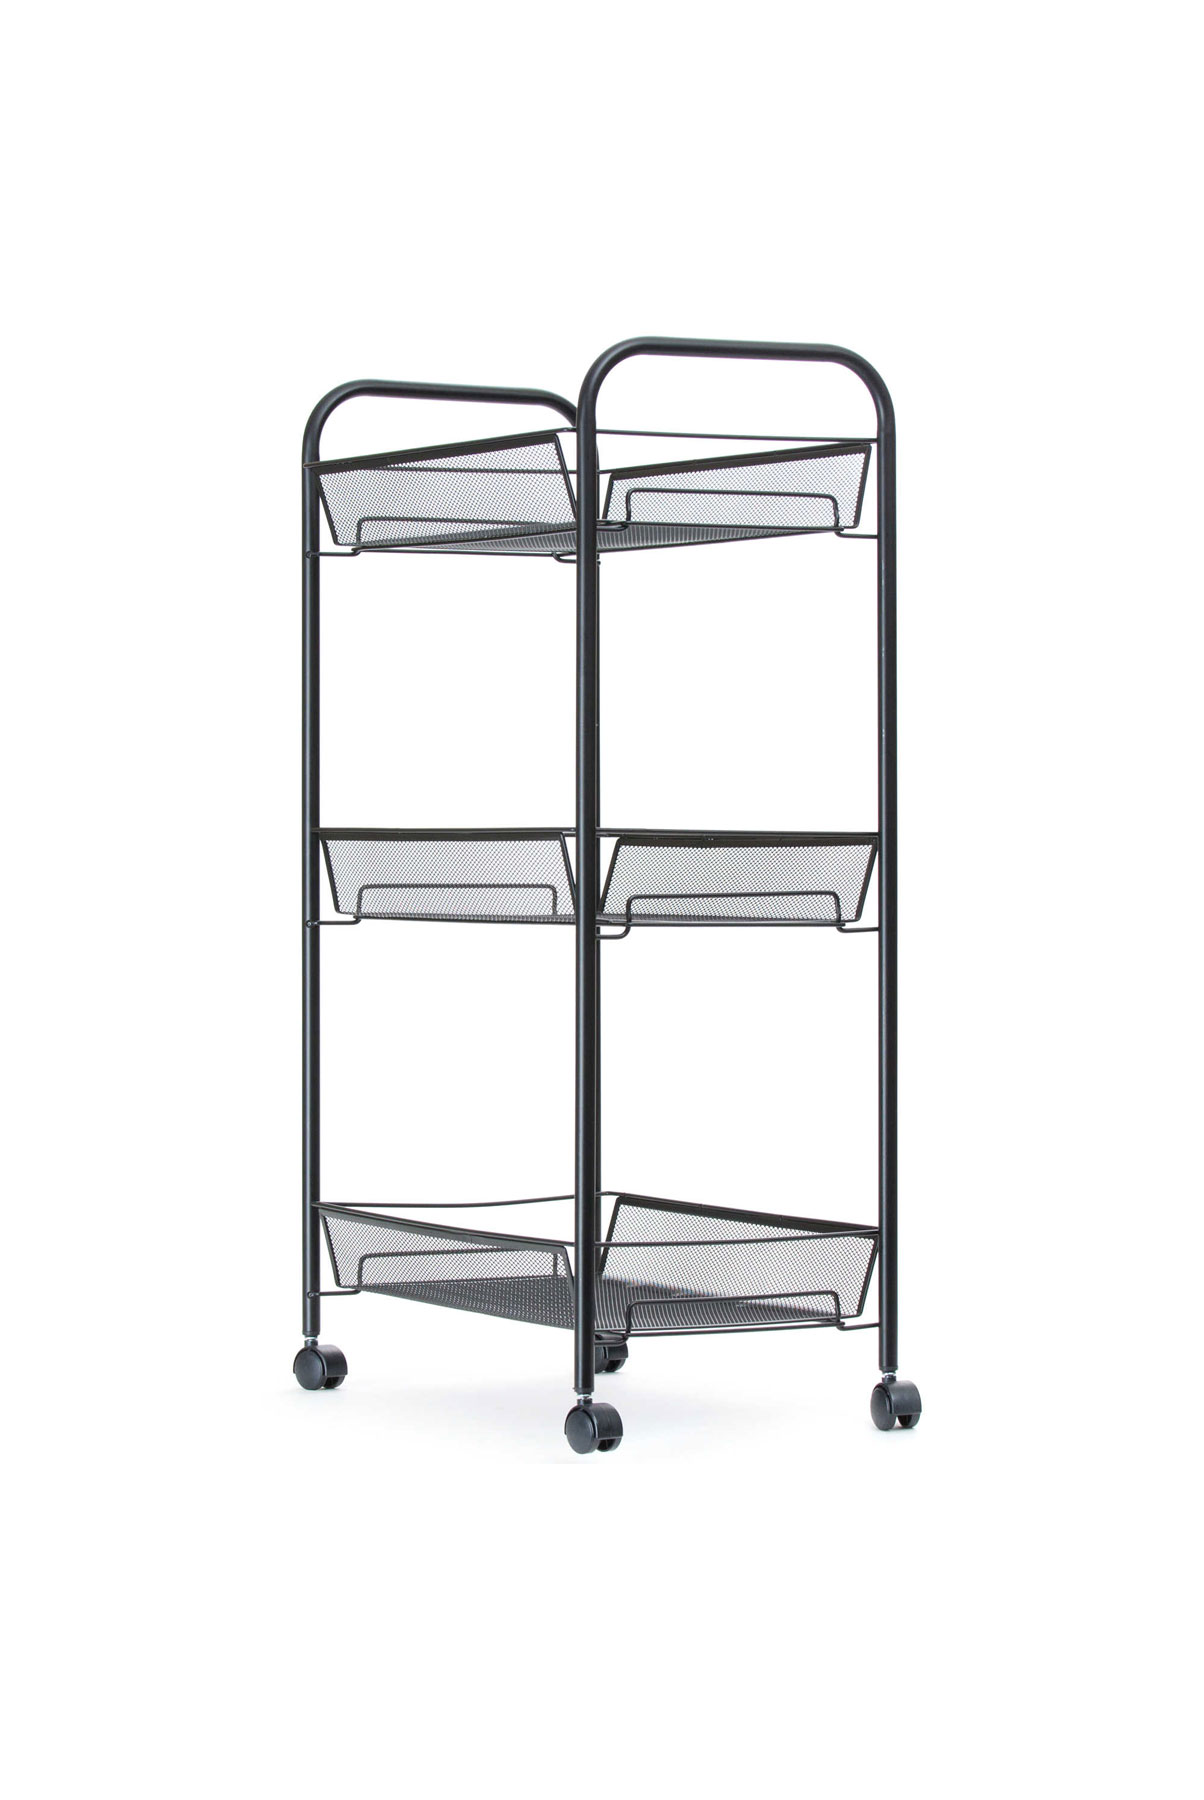 Less Than 30 Mind Reader 3 Shelf Metal Mesh Storage Cart In Black